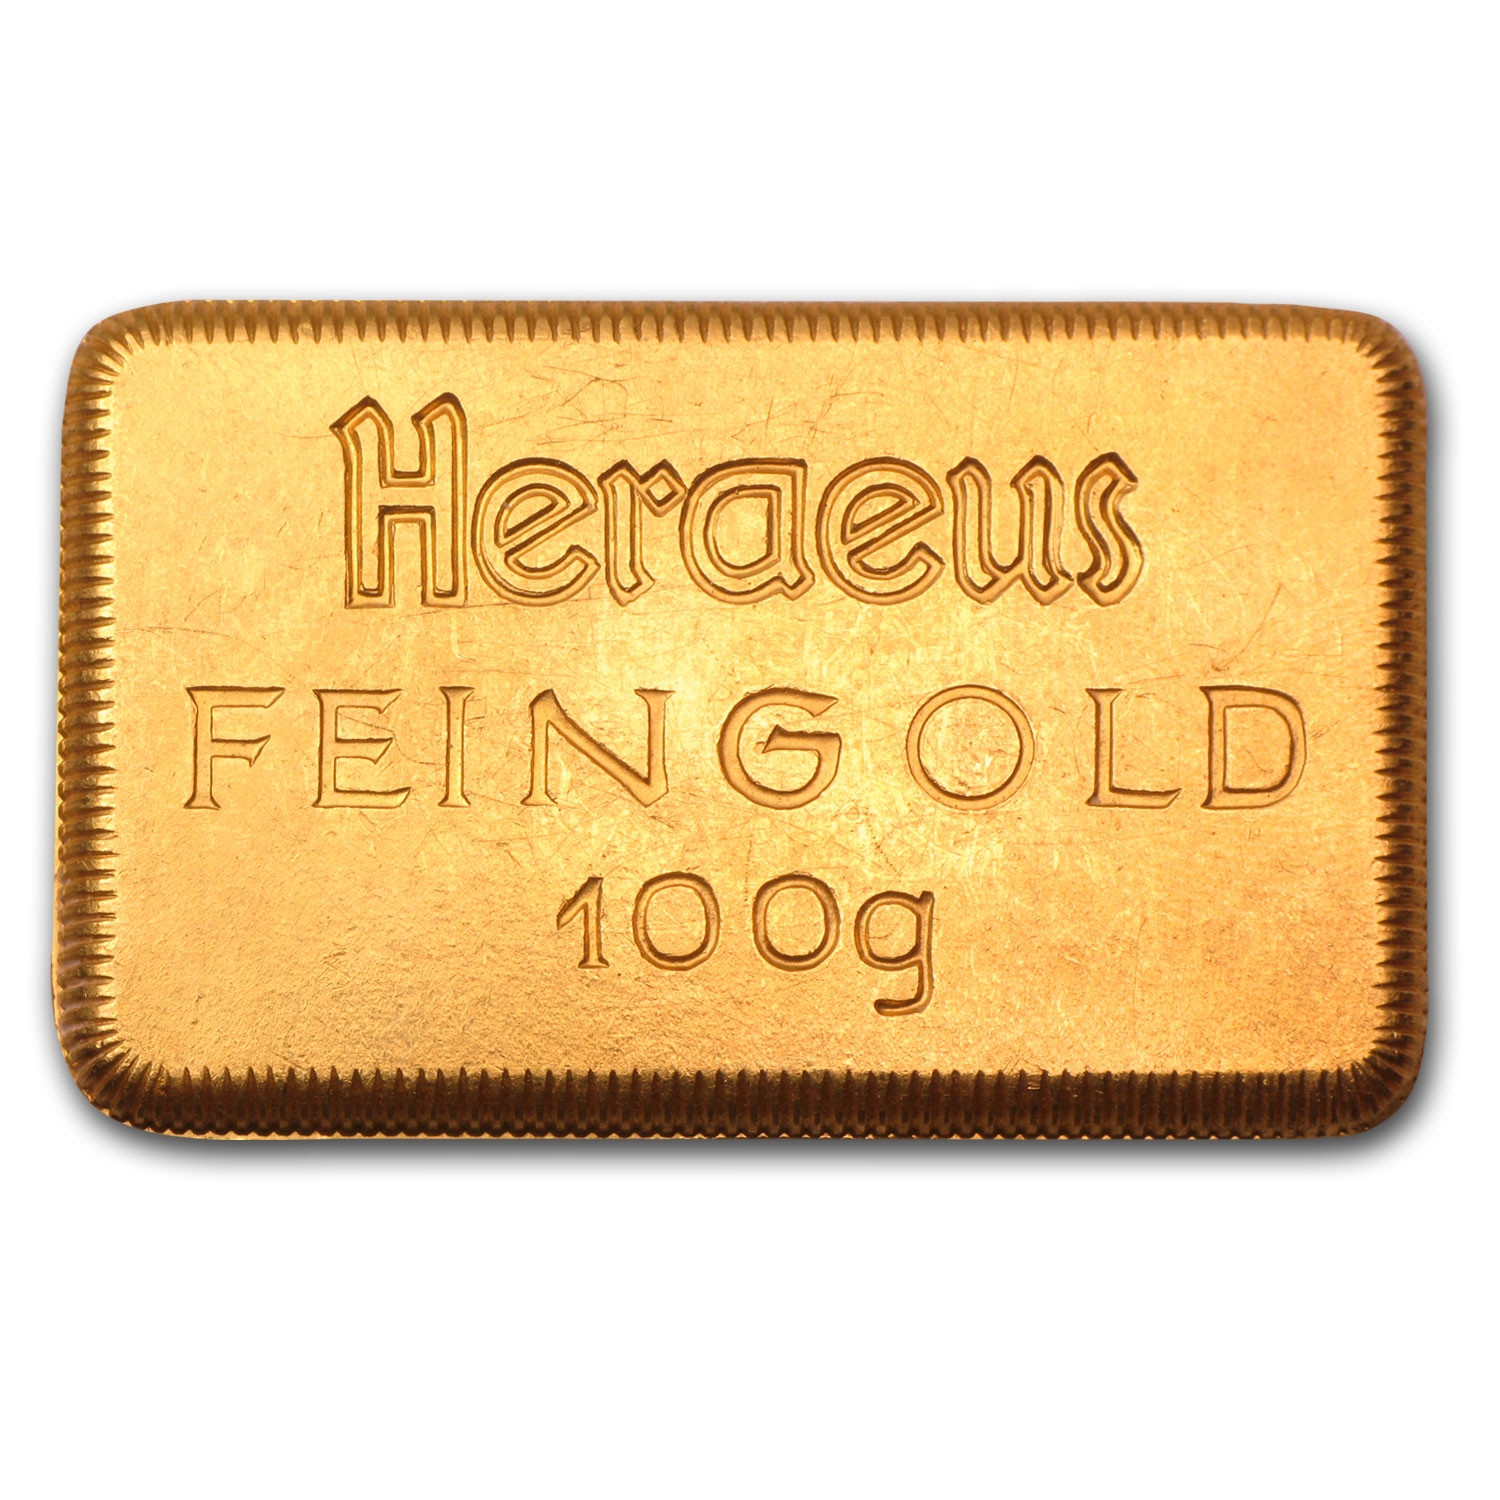 100 gram Gold Bars - Heraeus (Stamped)